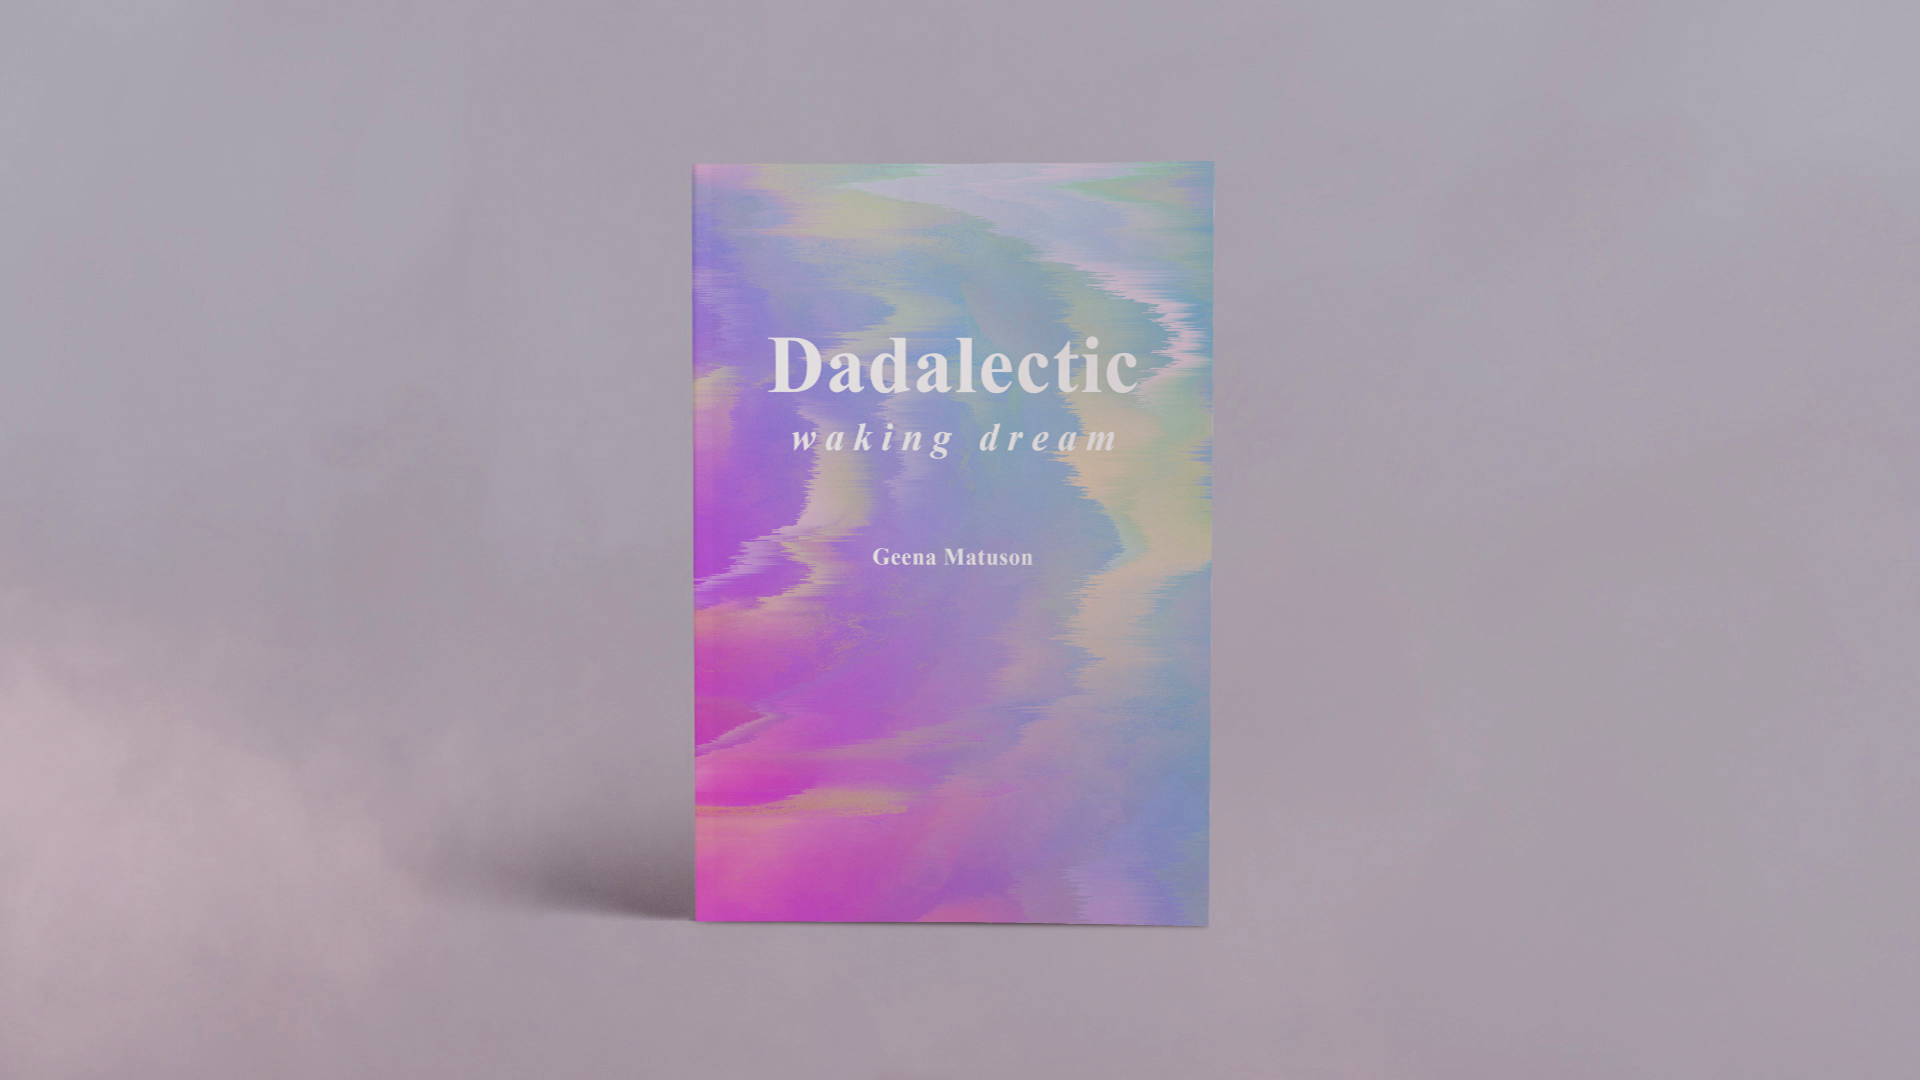 Geena Matuson's first published book 'Dadalectic: Waking Dream' available on Amazon.com. See more at https://thegirlmirage.com #thegirlmirage.